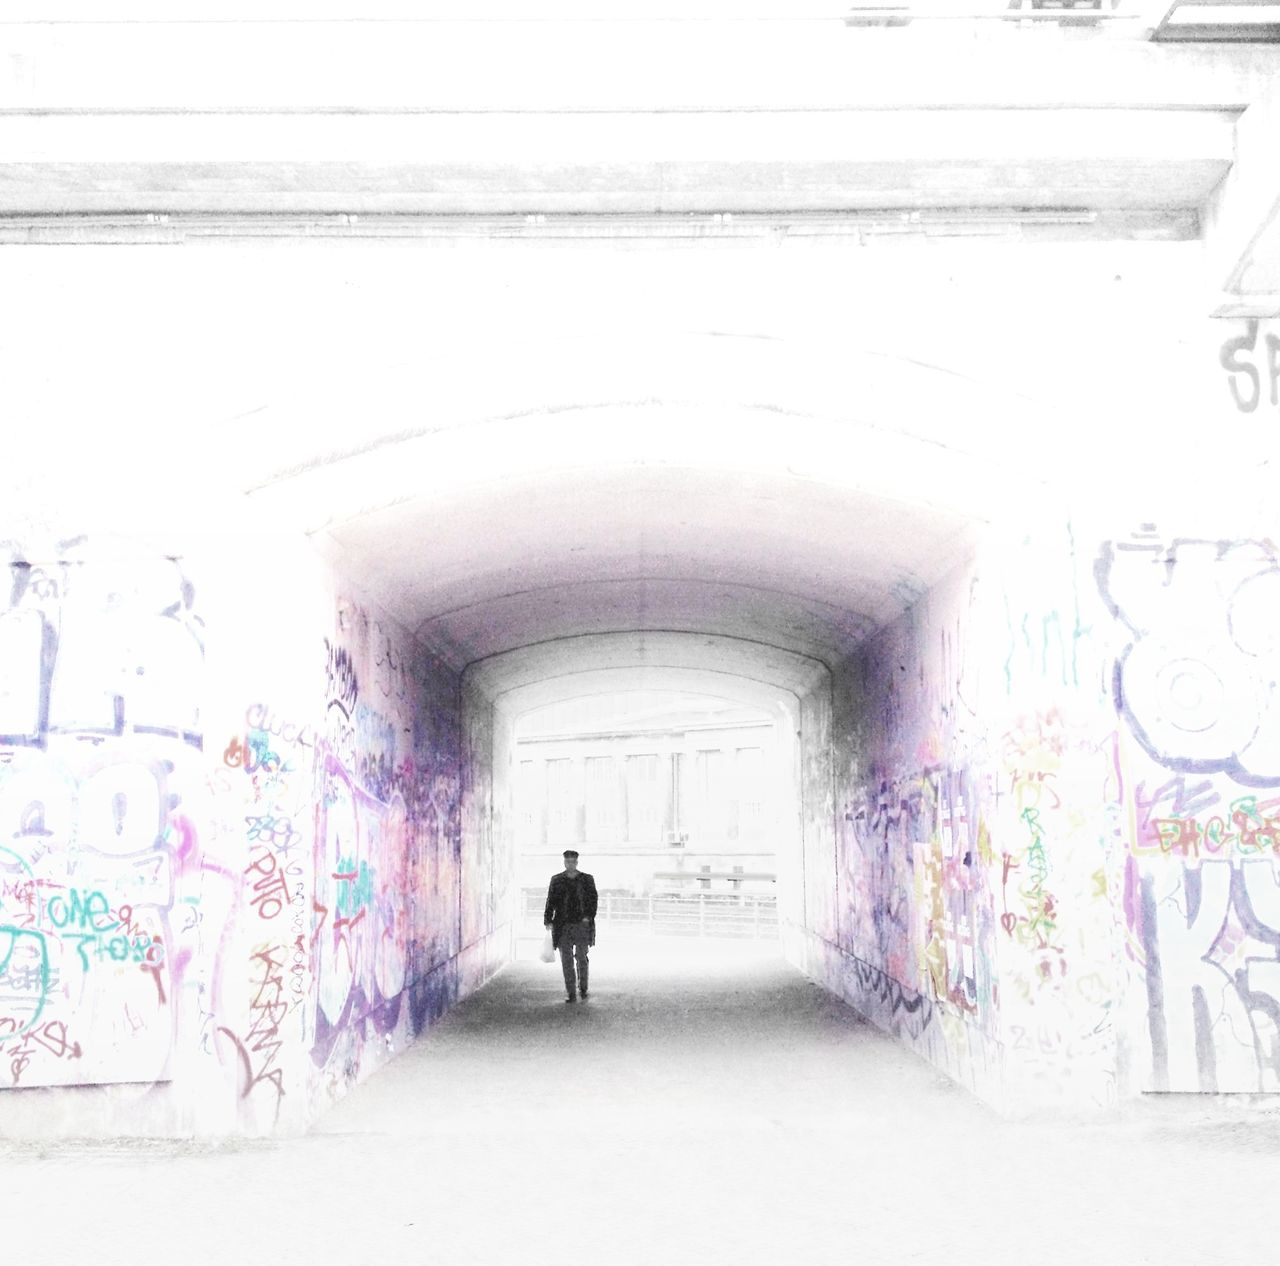 graffiti, architecture, one person, art and craft, built structure, multi colored, full length, street art, silhouette, real people, tunnel, men, day, indoors, people